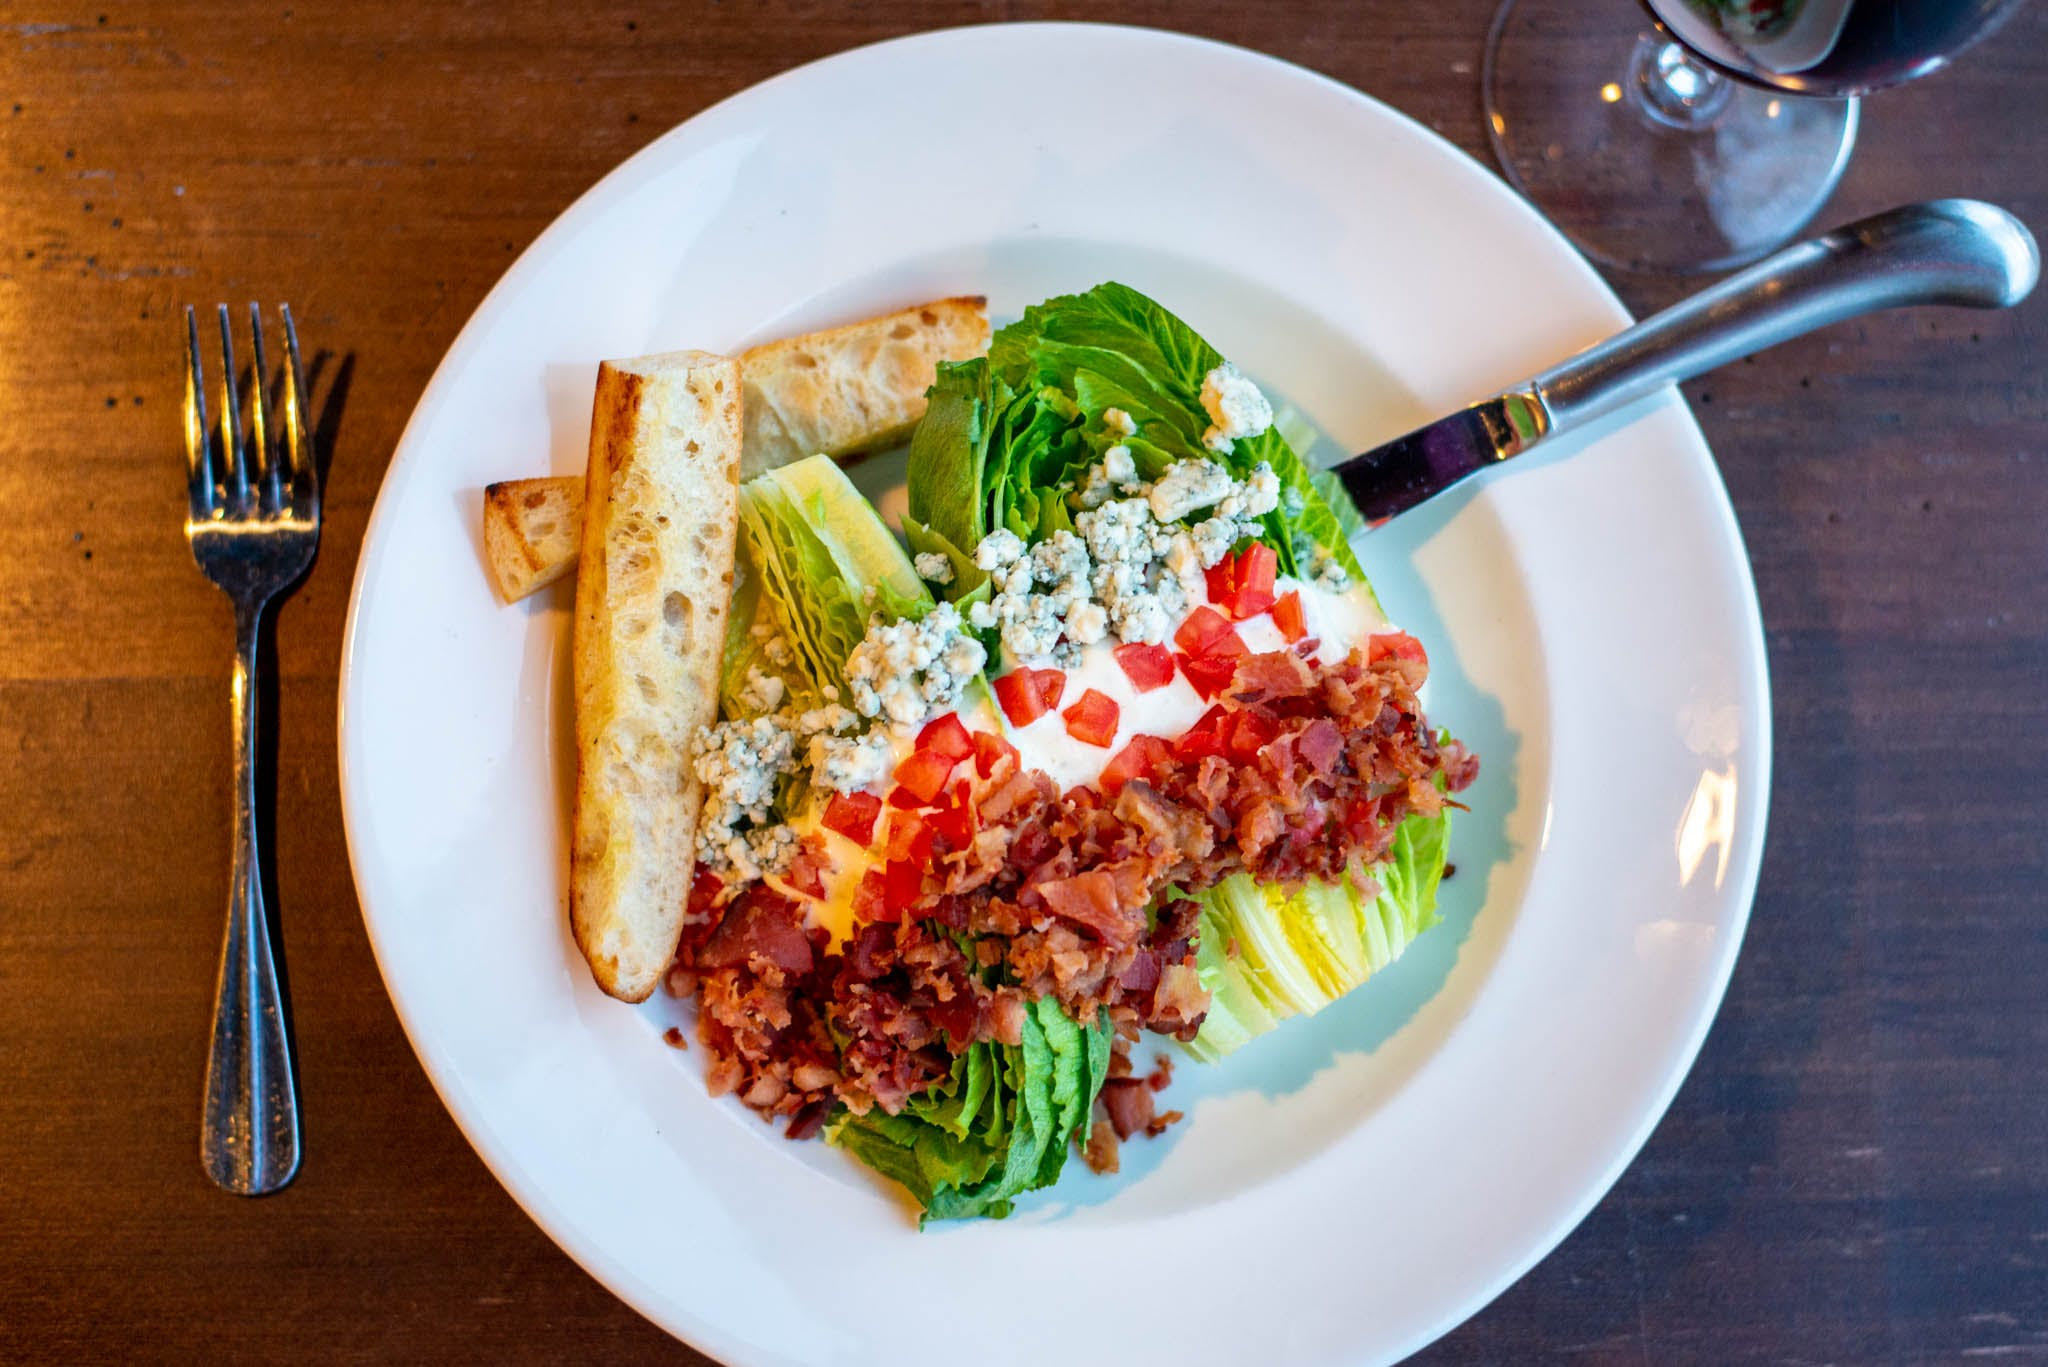 Bacon & Blue Wedge Salad from The Bottle Room in Green Bay, WI